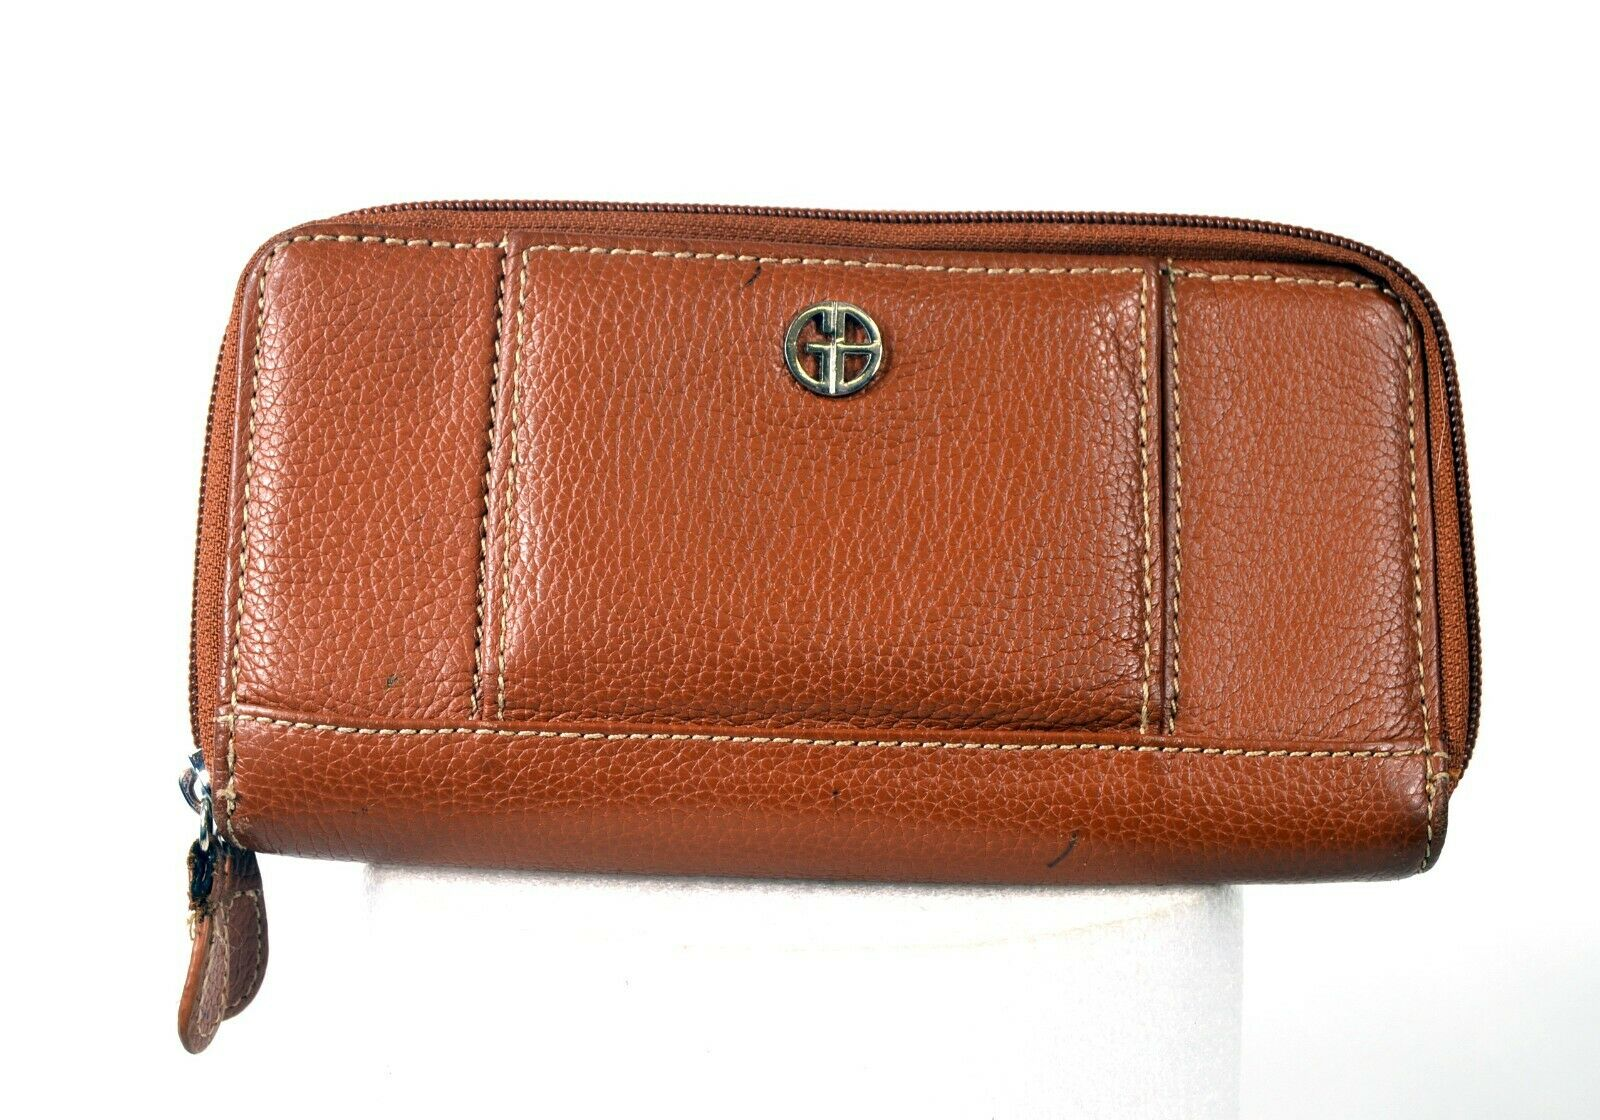 Genuine Leather Clutch Wallet - GB Brand - Brown / Tan - 8in x 4in